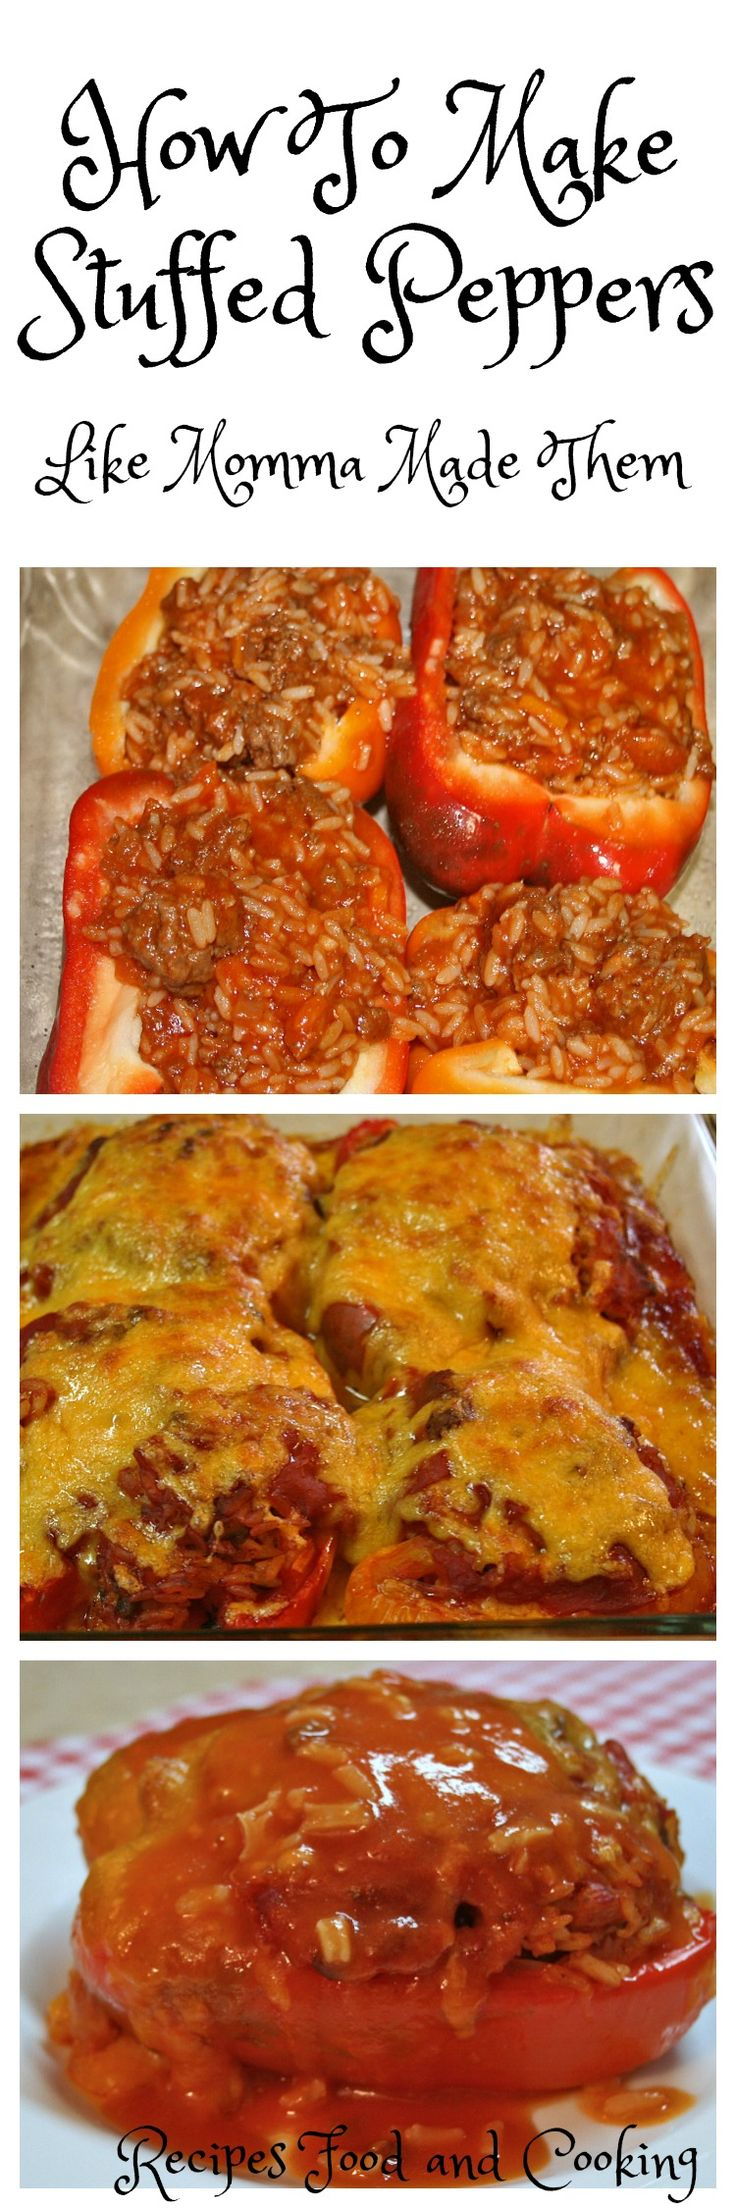 Stuffed Peppers Stuffed Peppers are made with savory spanish rice stuffed in peppers, topped with cheddar cheese.